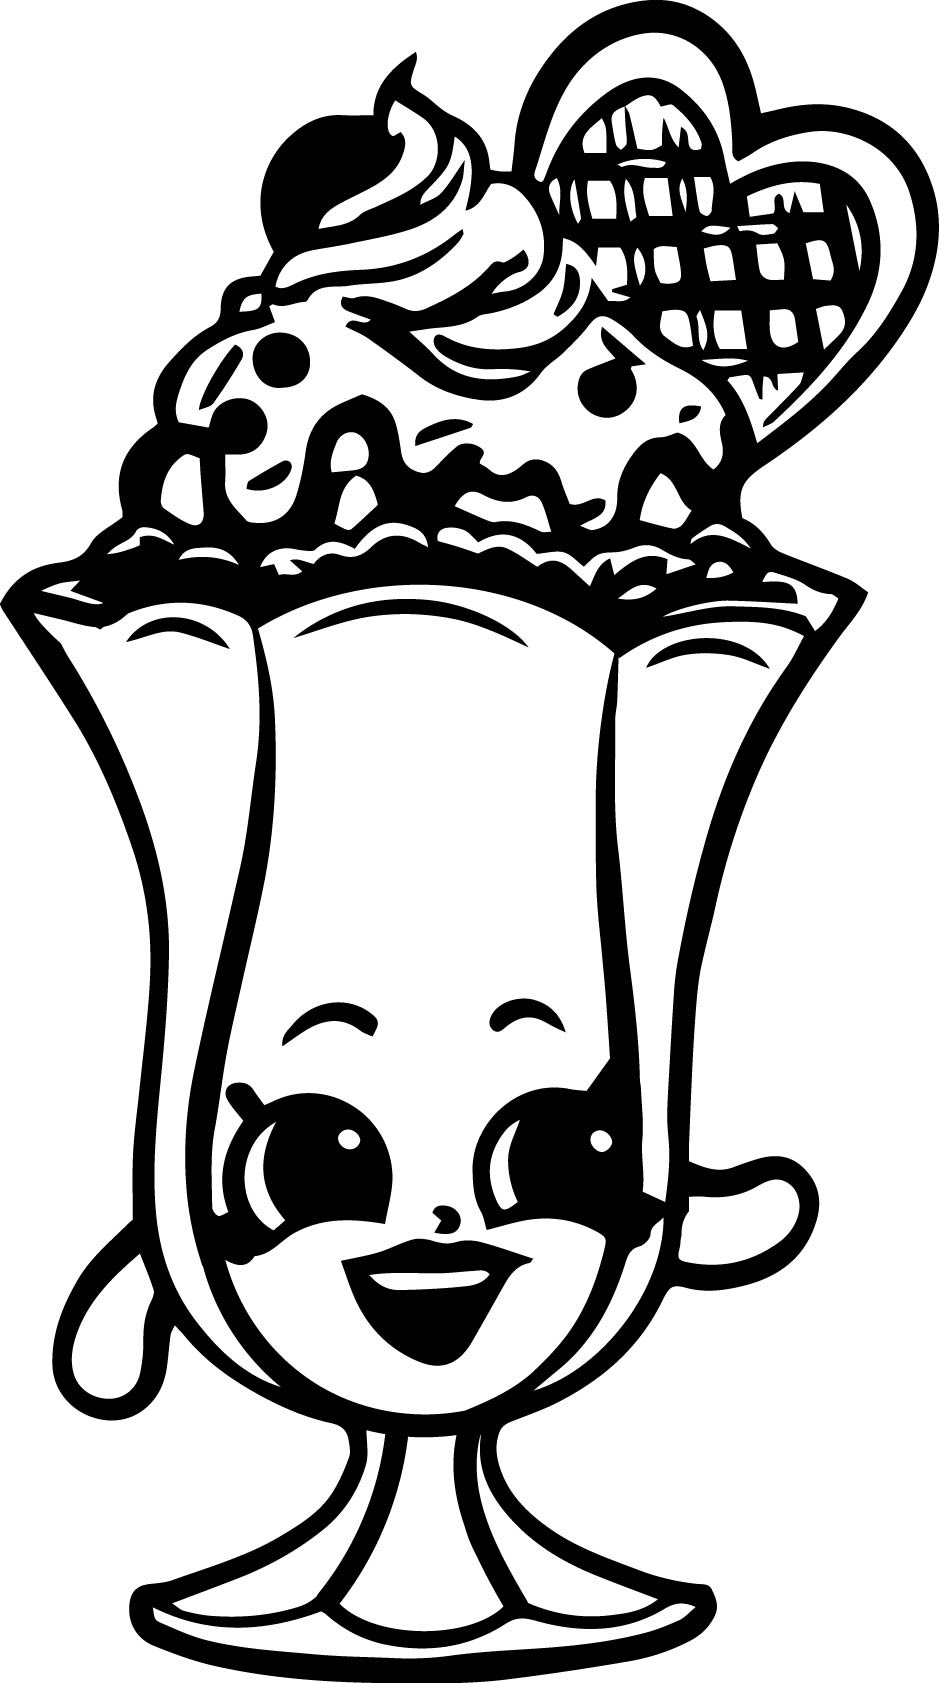 31 EASY SHOPKINS COLORING PAGES